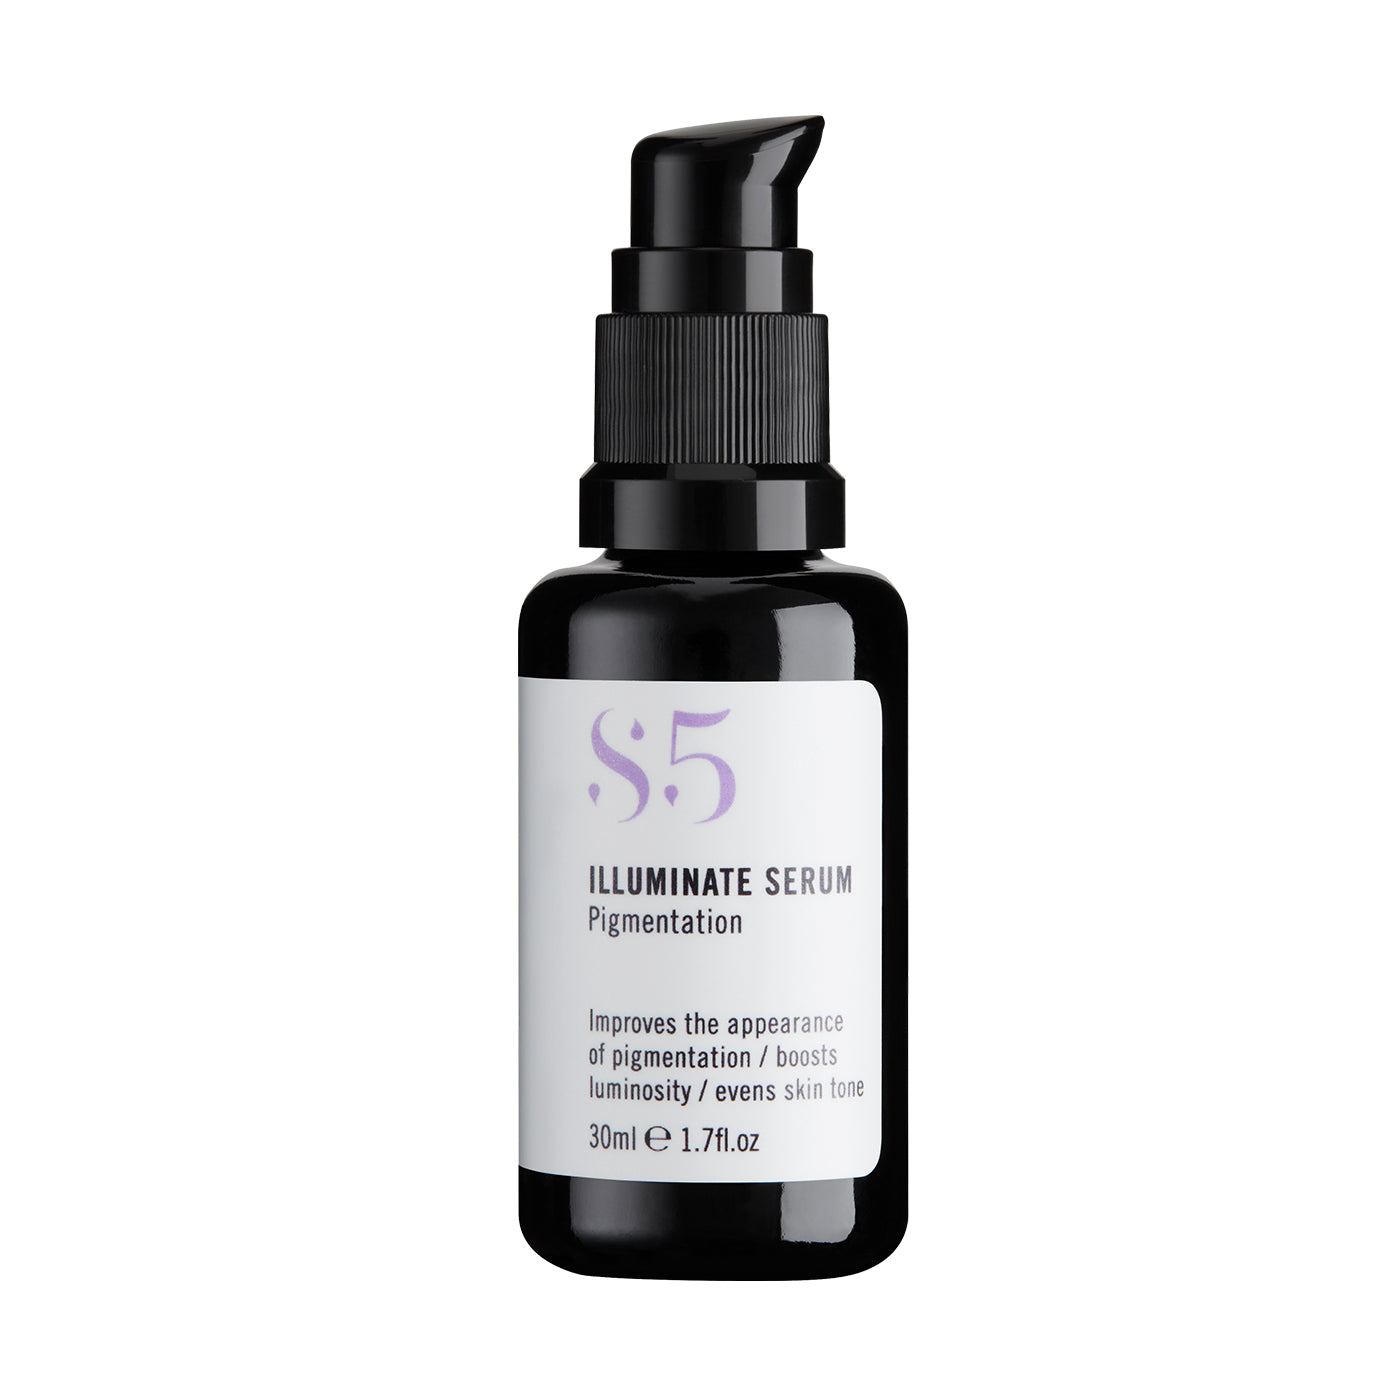 S5 Illuminate Serum